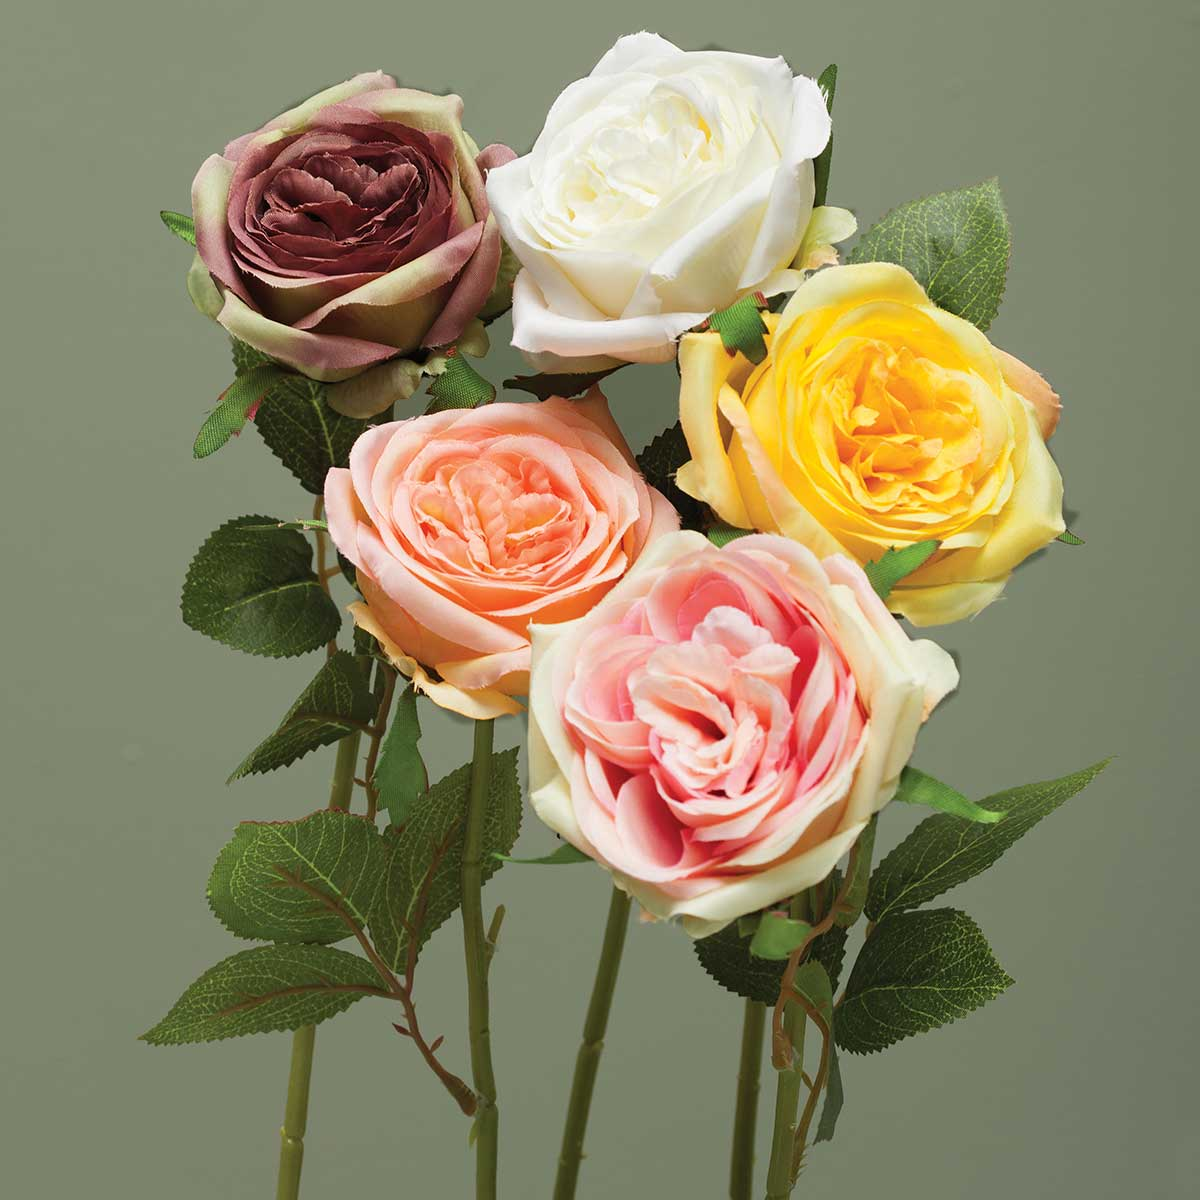 AMERICAN ROSE ASSORTMENT PACK 15 UNITS